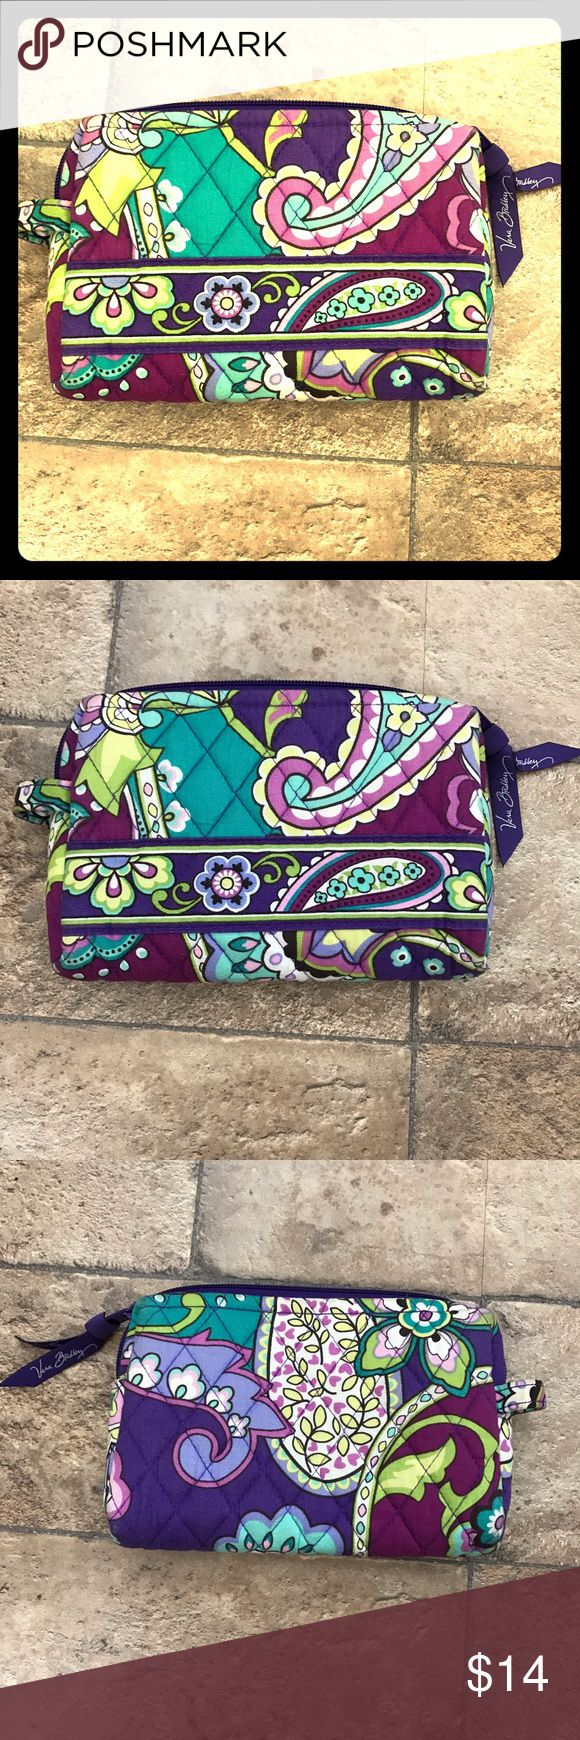 Vera Bradley Small Cosmetic Bag Heather NWOT New without tags small cosmetic bag by Vera Bradley I retired heather pattern. Tags removed but has been stored in my dresser drawer without being used. Hoping to find this beautiful cosmetic bag a home since I have too much Vera Bradley. Vera Bradley Bags Cosmetic Bags & Cases